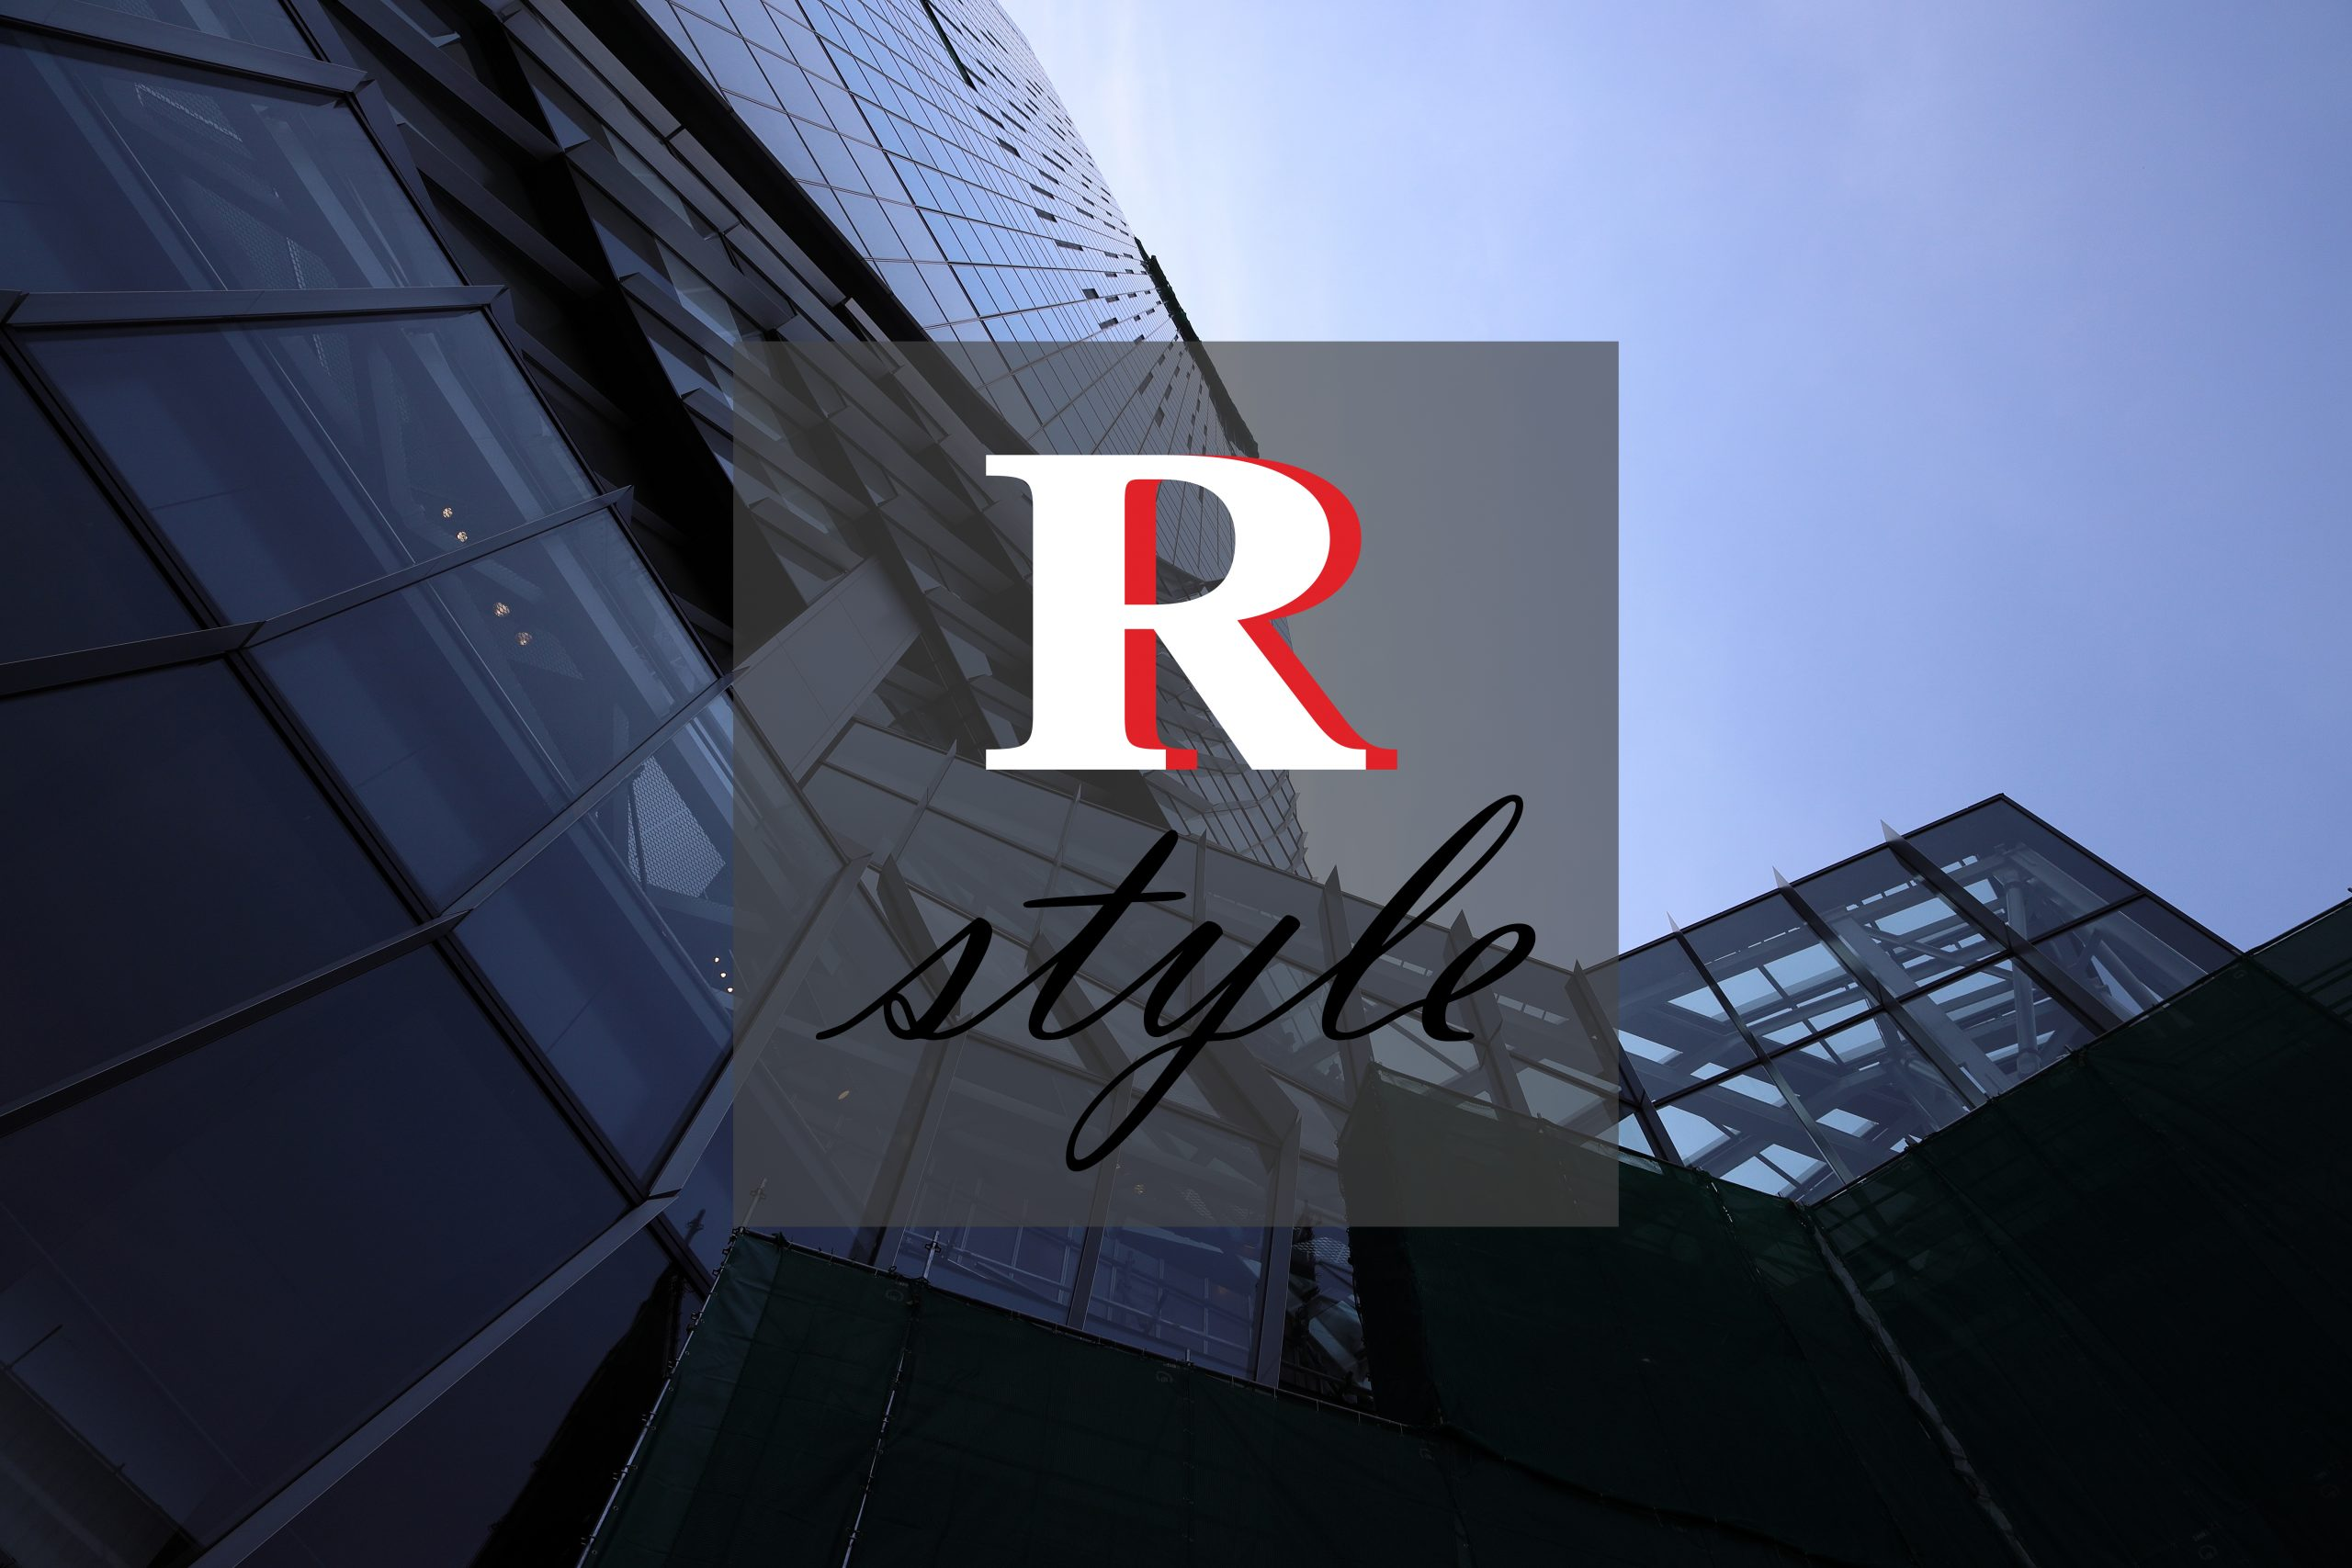 【Canon】 R STYLE ~RF24-105mm F4L IS USM~